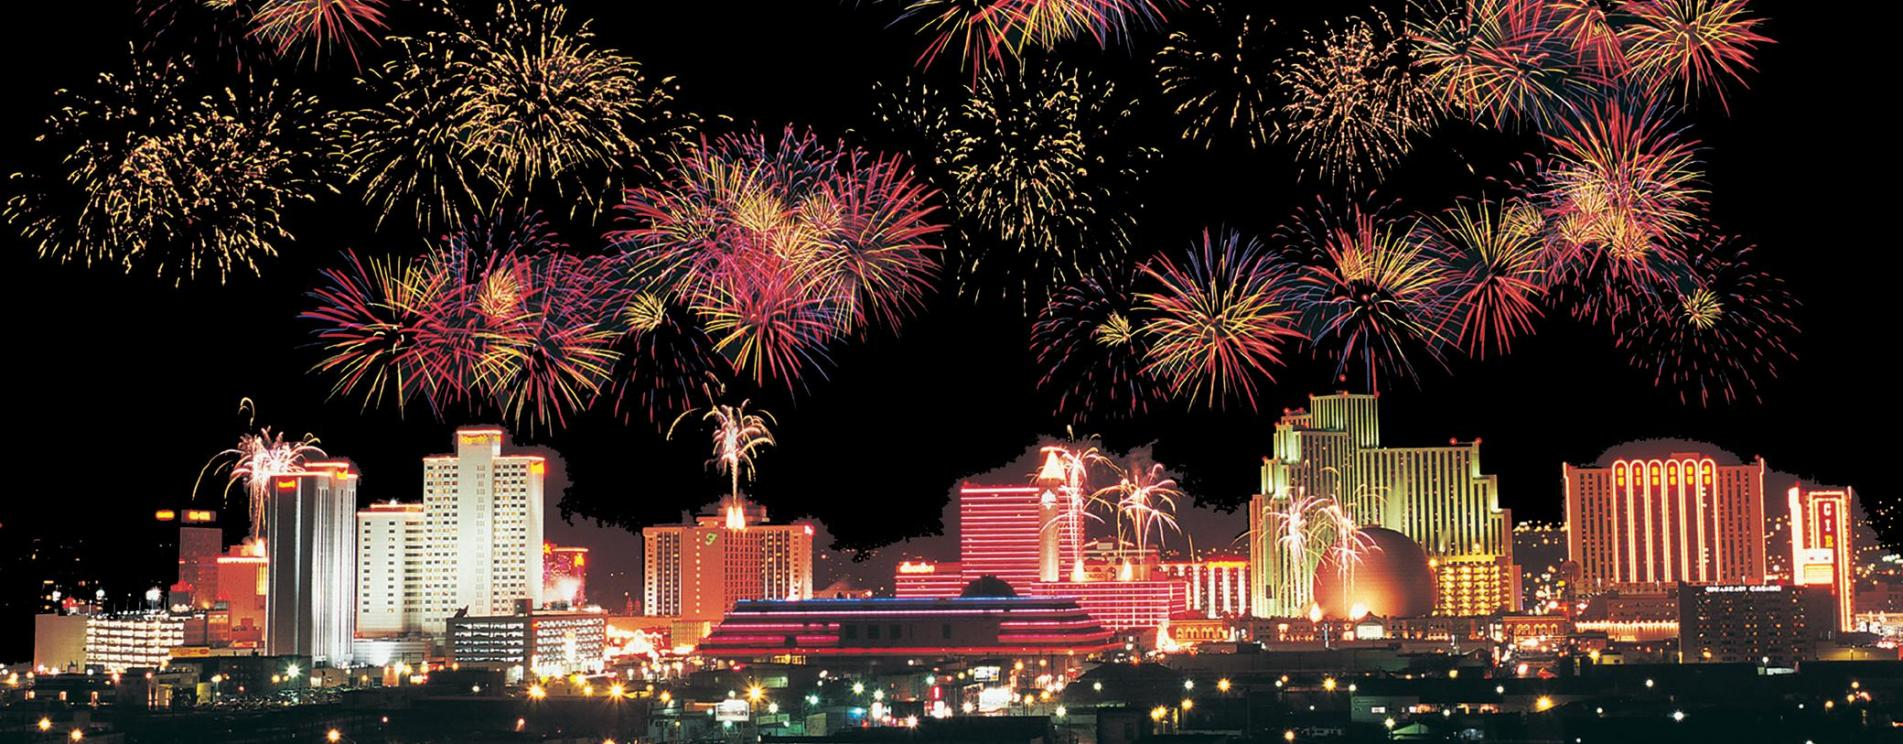 Fireworks over Downtown Reno for Terms & Conditions